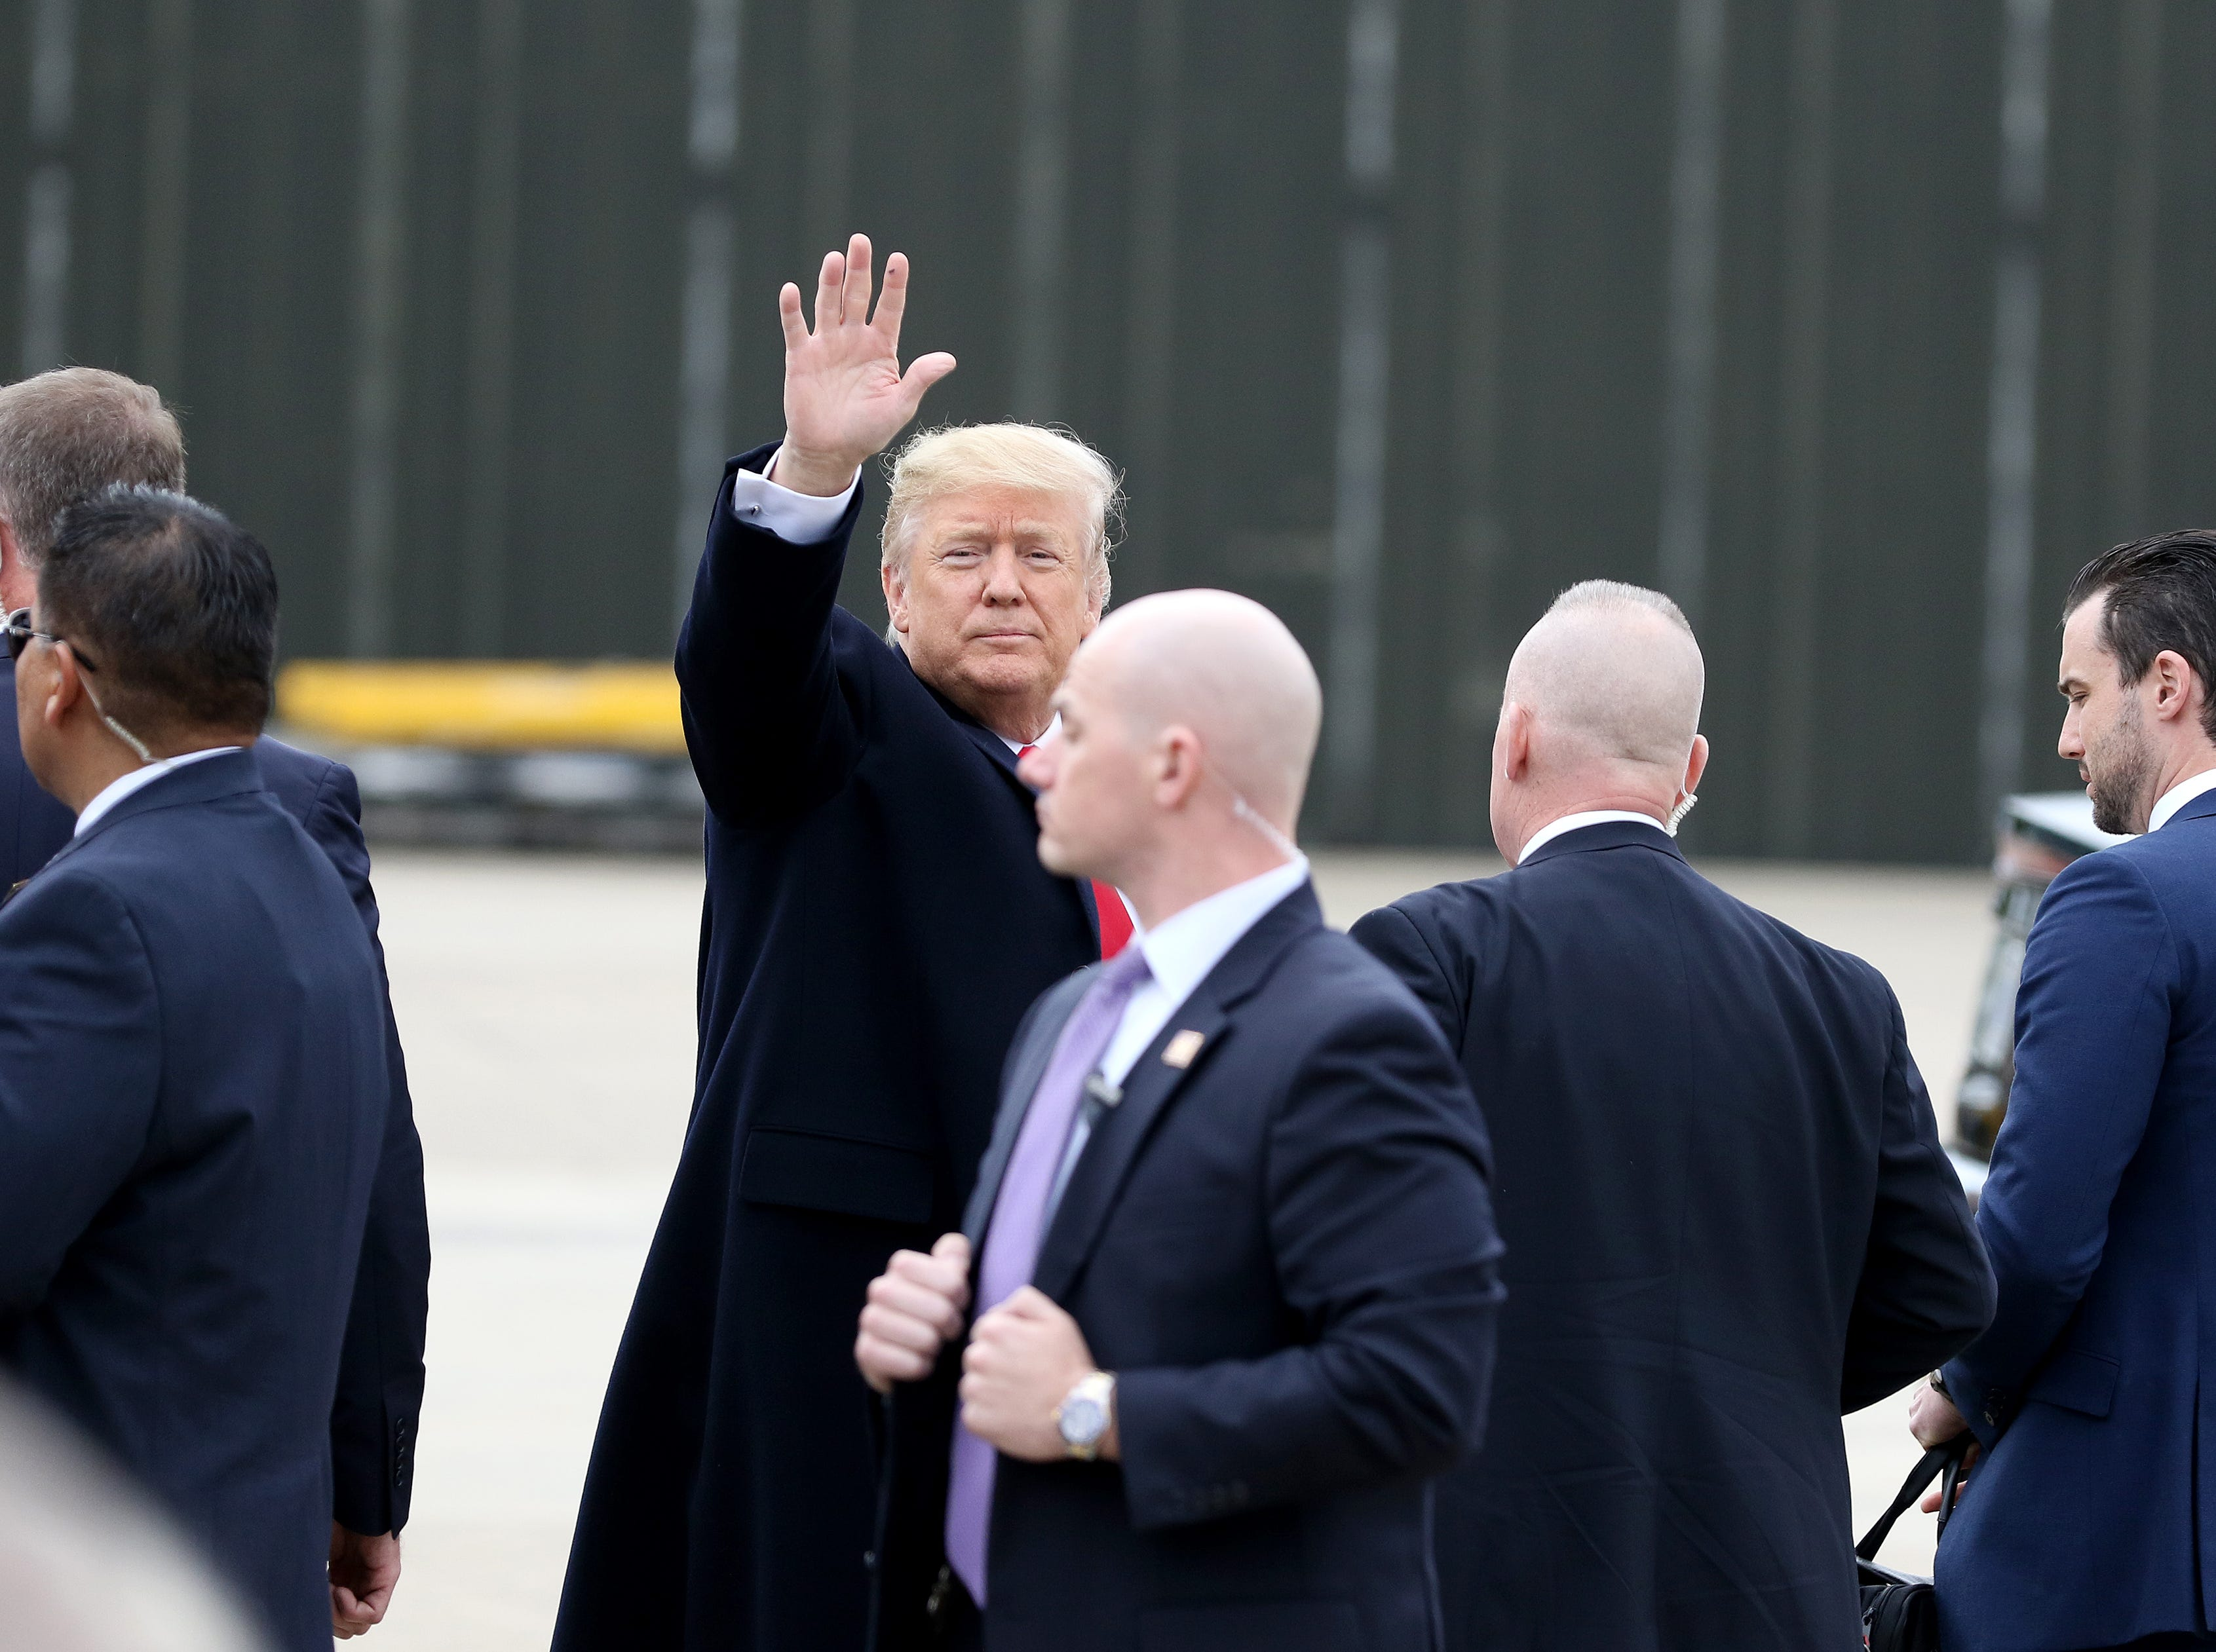 President Donald Trump waves to supporters at Lunken Airport Friday, October 12, 2018 for a Make America Great Again (MAGA) rally in Lebanon.